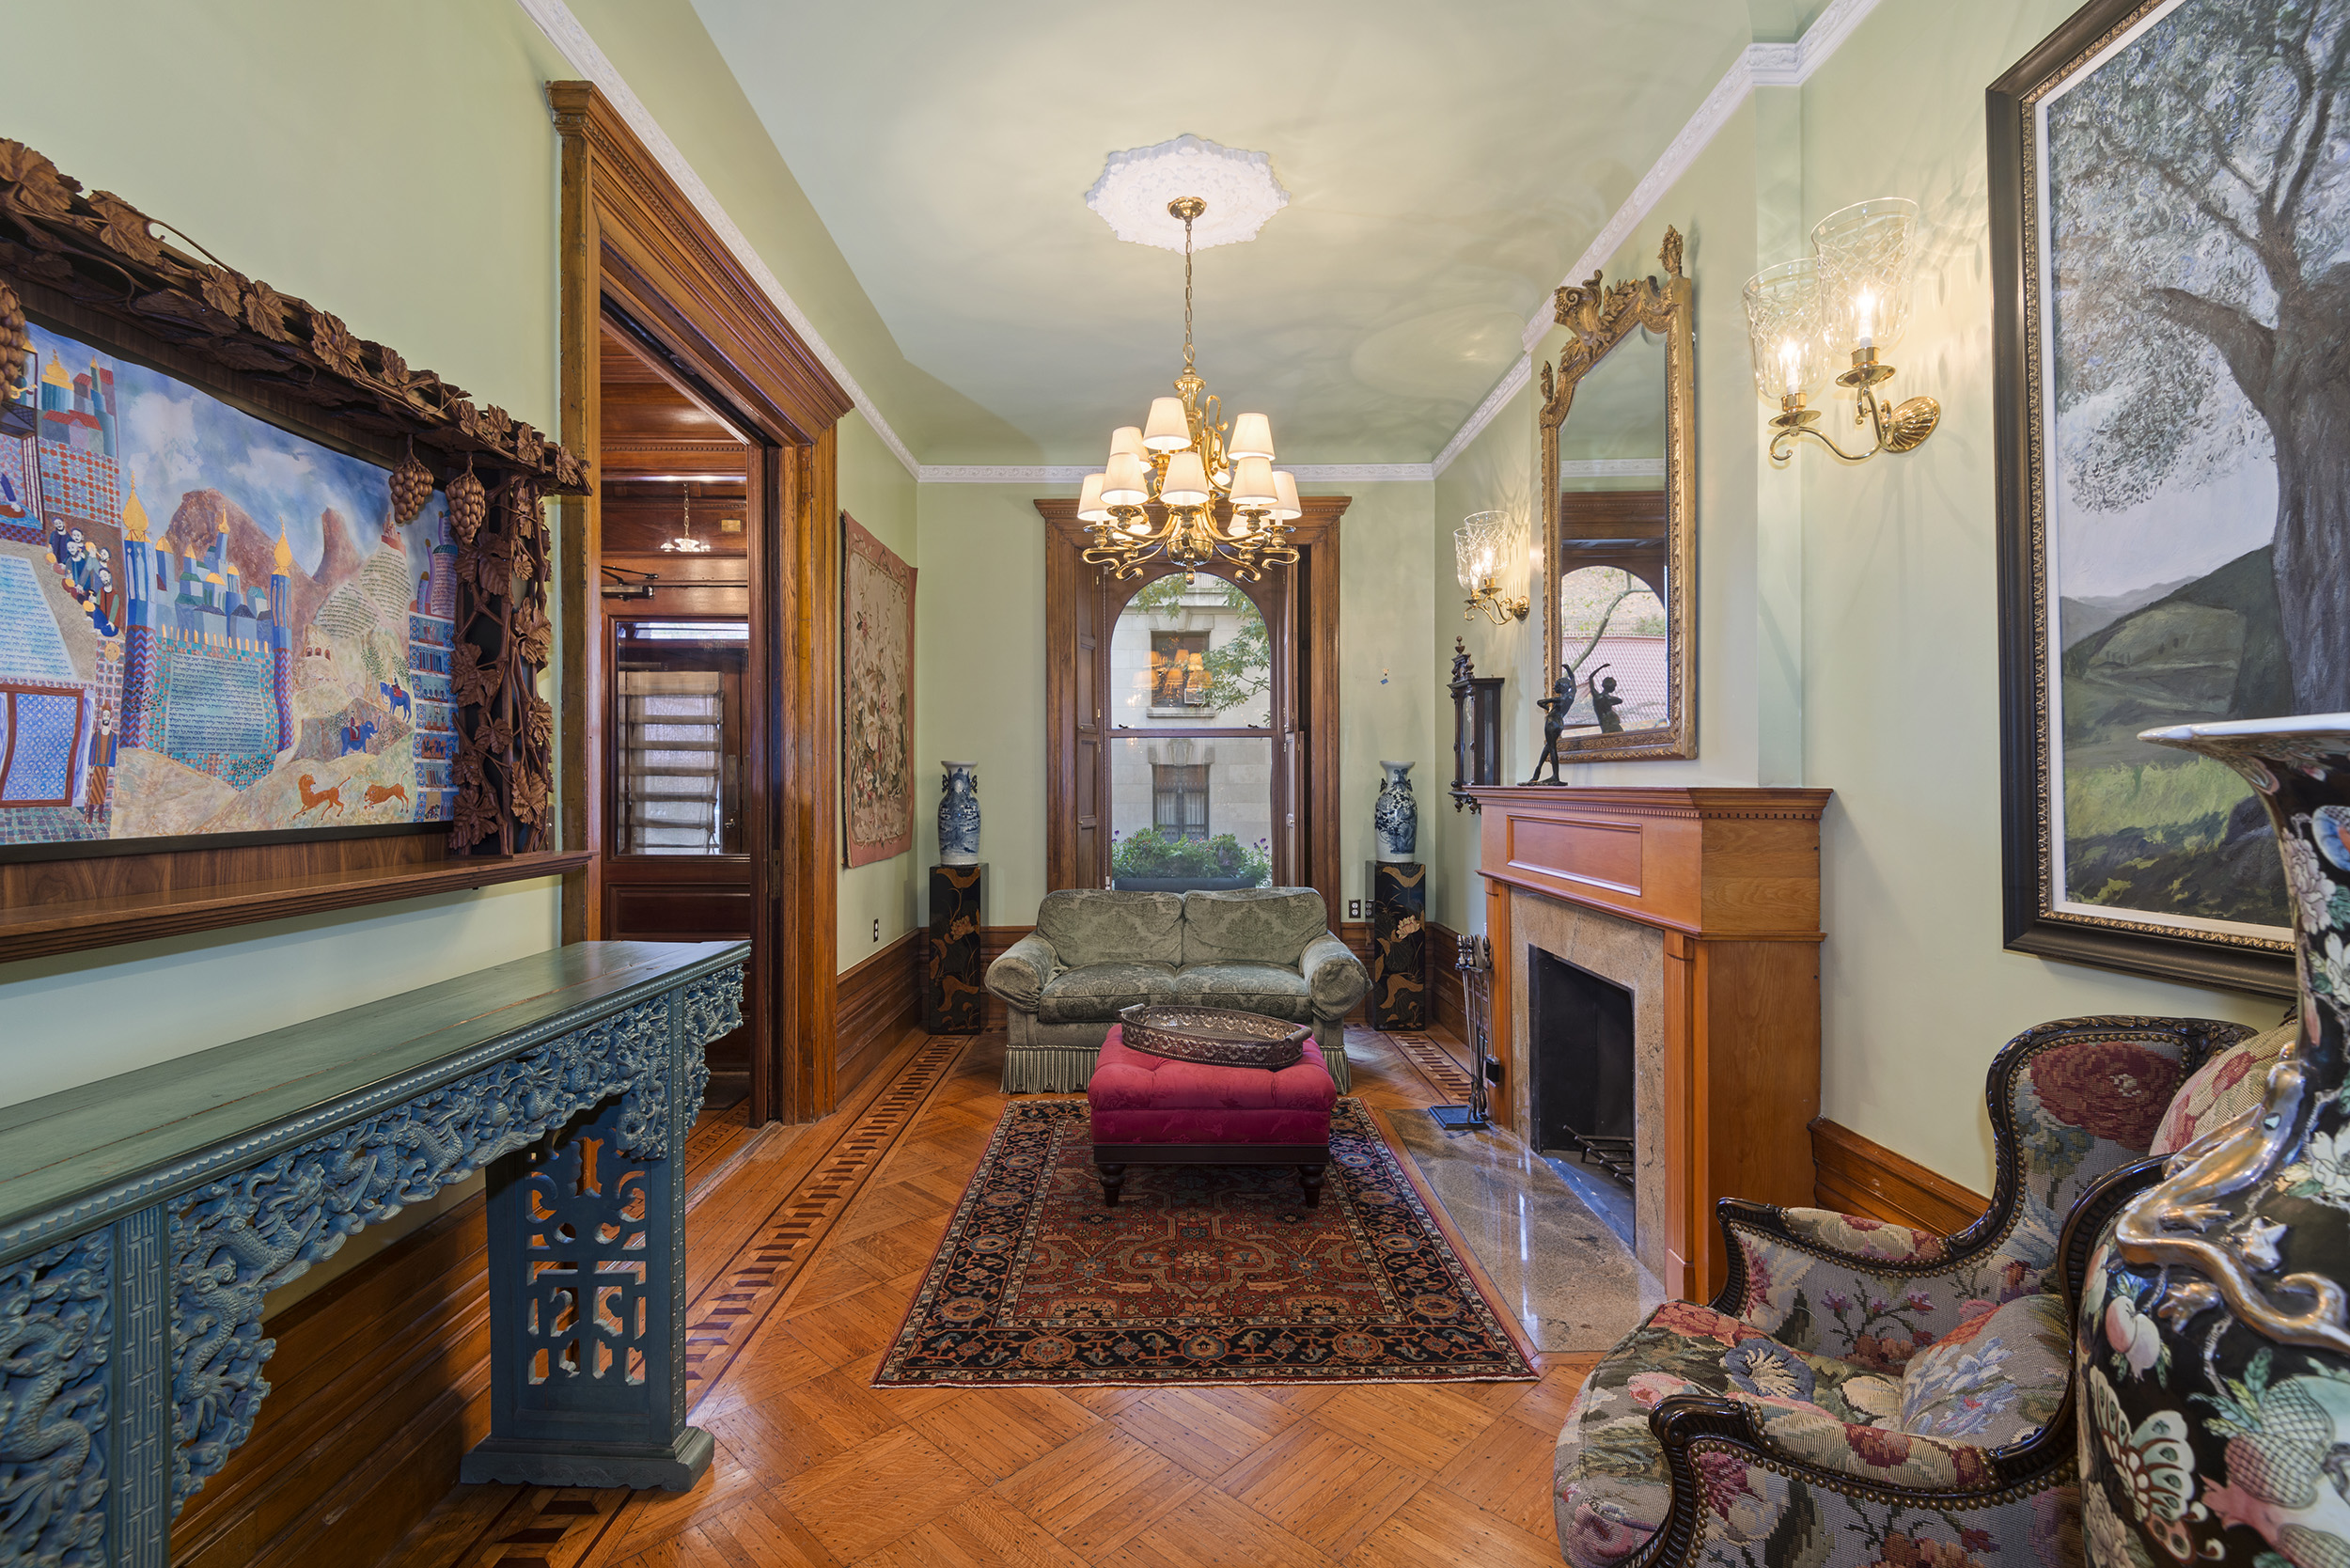 131 West 69th Street: Luxury Upper West Side townhouse living room